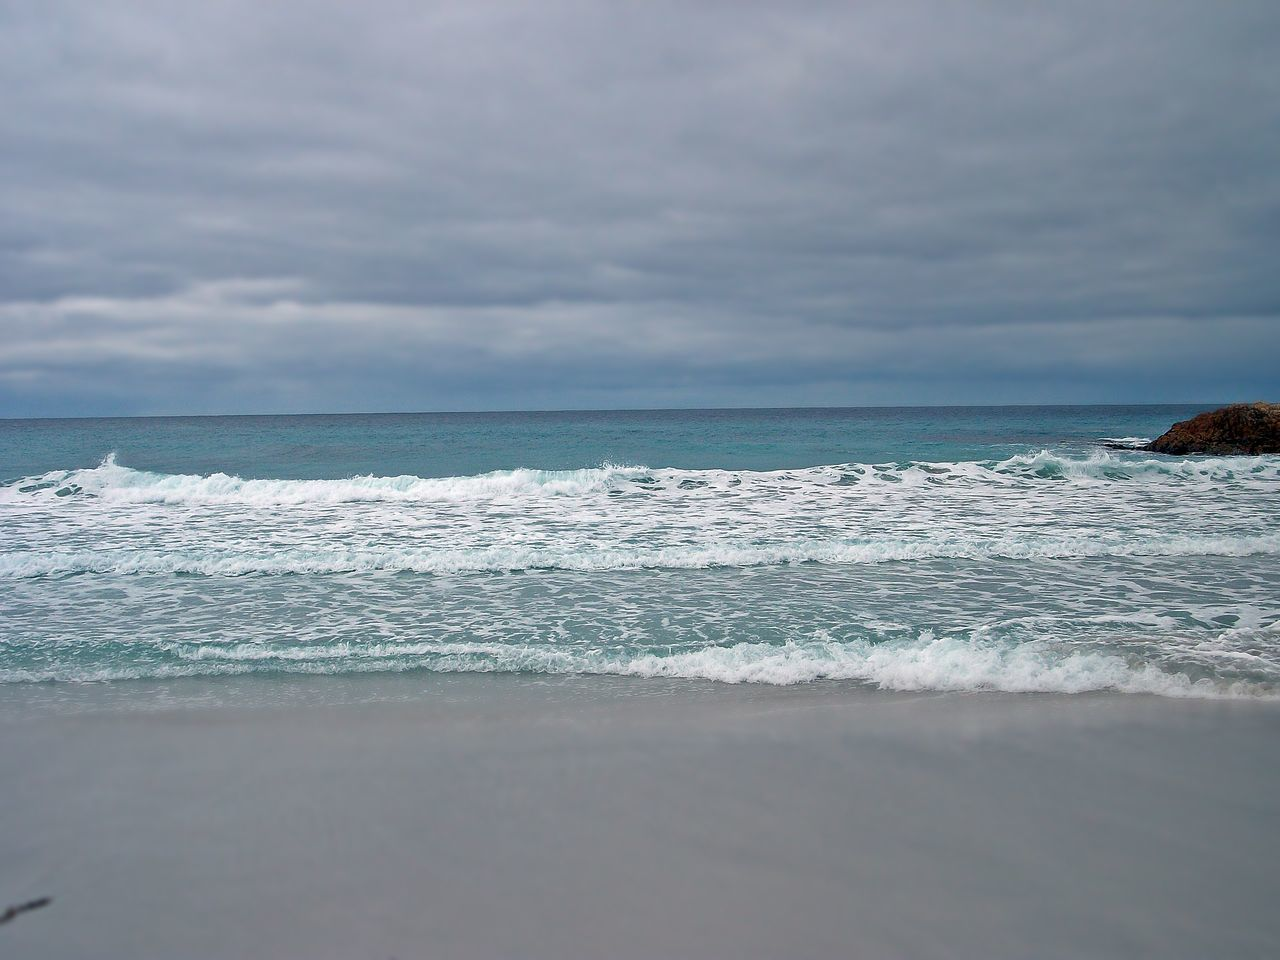 Friendly Beaches, Coles Bay Beach Beauty In Nature Cloud - Sky Day Friendly Beaches Horizon Over Water Idyllic Nature No People Outdoors Scenics Sea Sky Tasmania Tranquility Water Wave